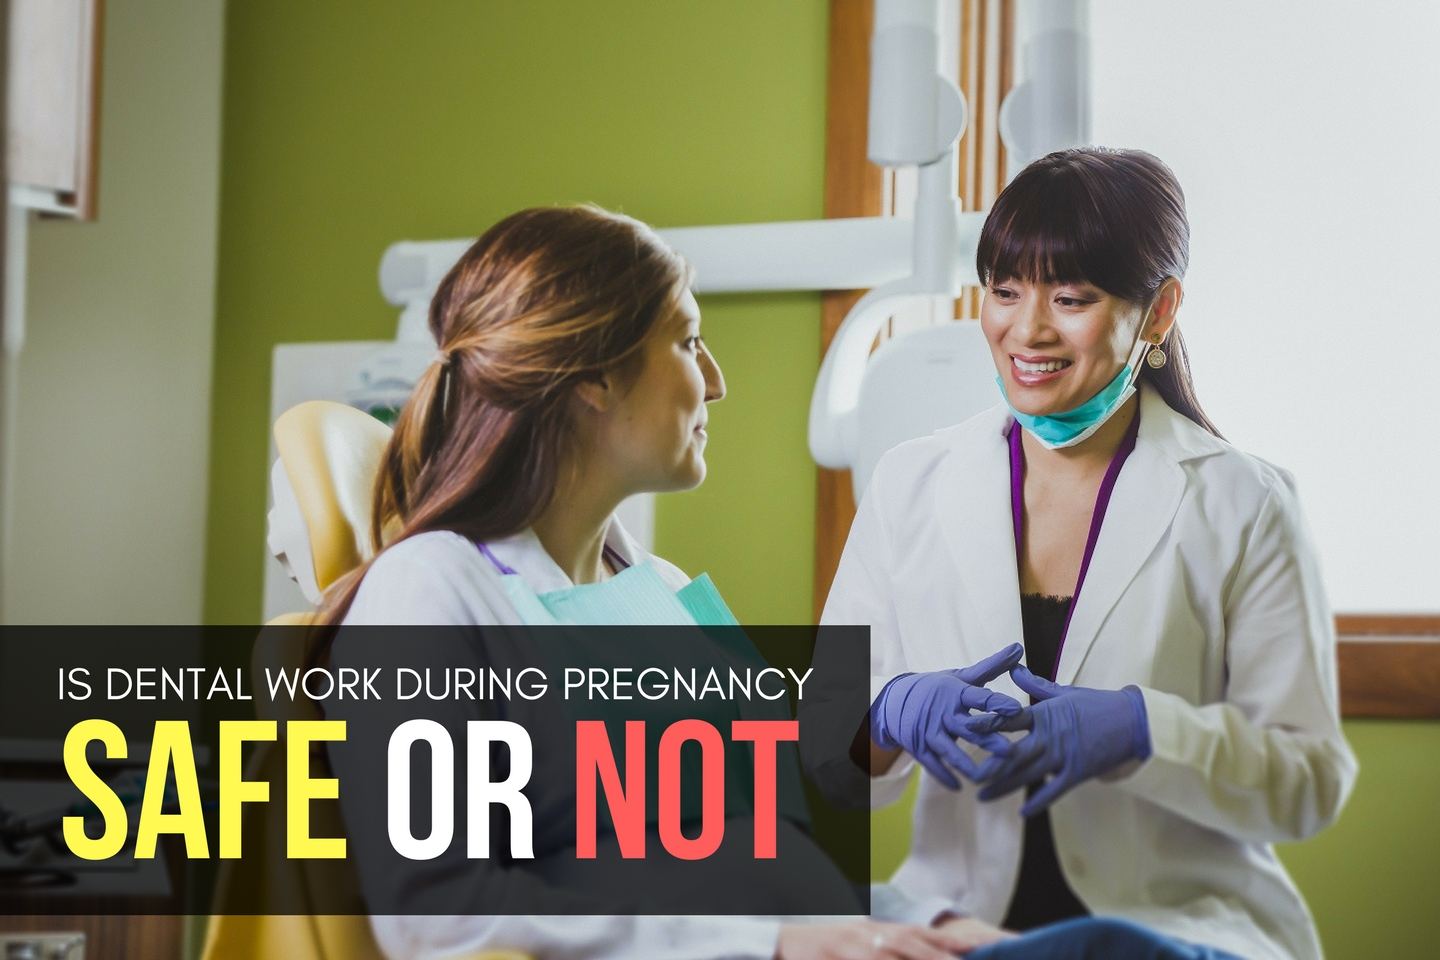 IS DENTAL WORK DURING PREGNANCY SAFE OR NOT